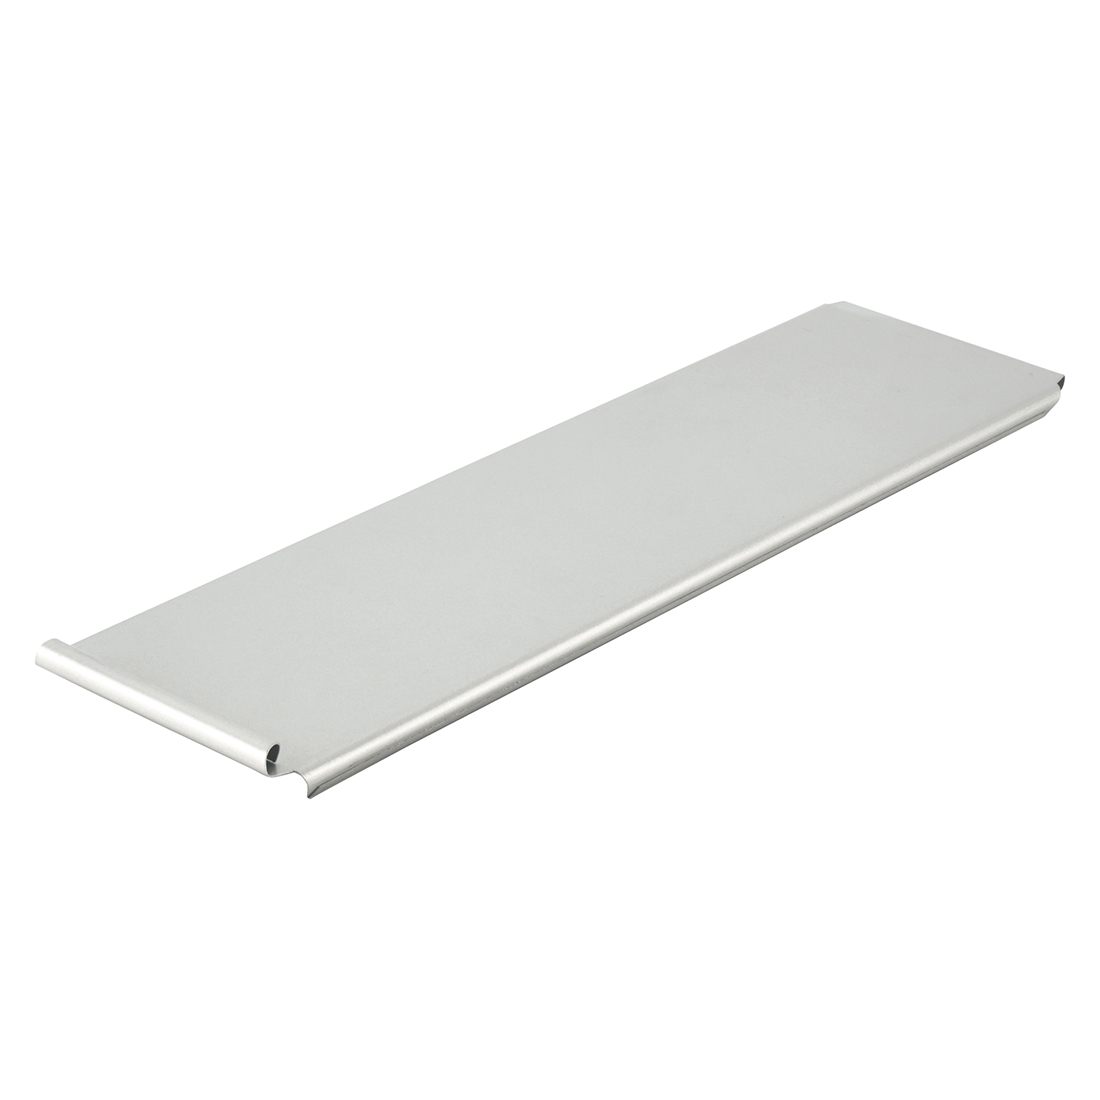 "Winco HPP-20L Pullman Pan Sliding Cover, 17-5/8"" x 4-1/2"" x 1/2"", Aluminized Steel"